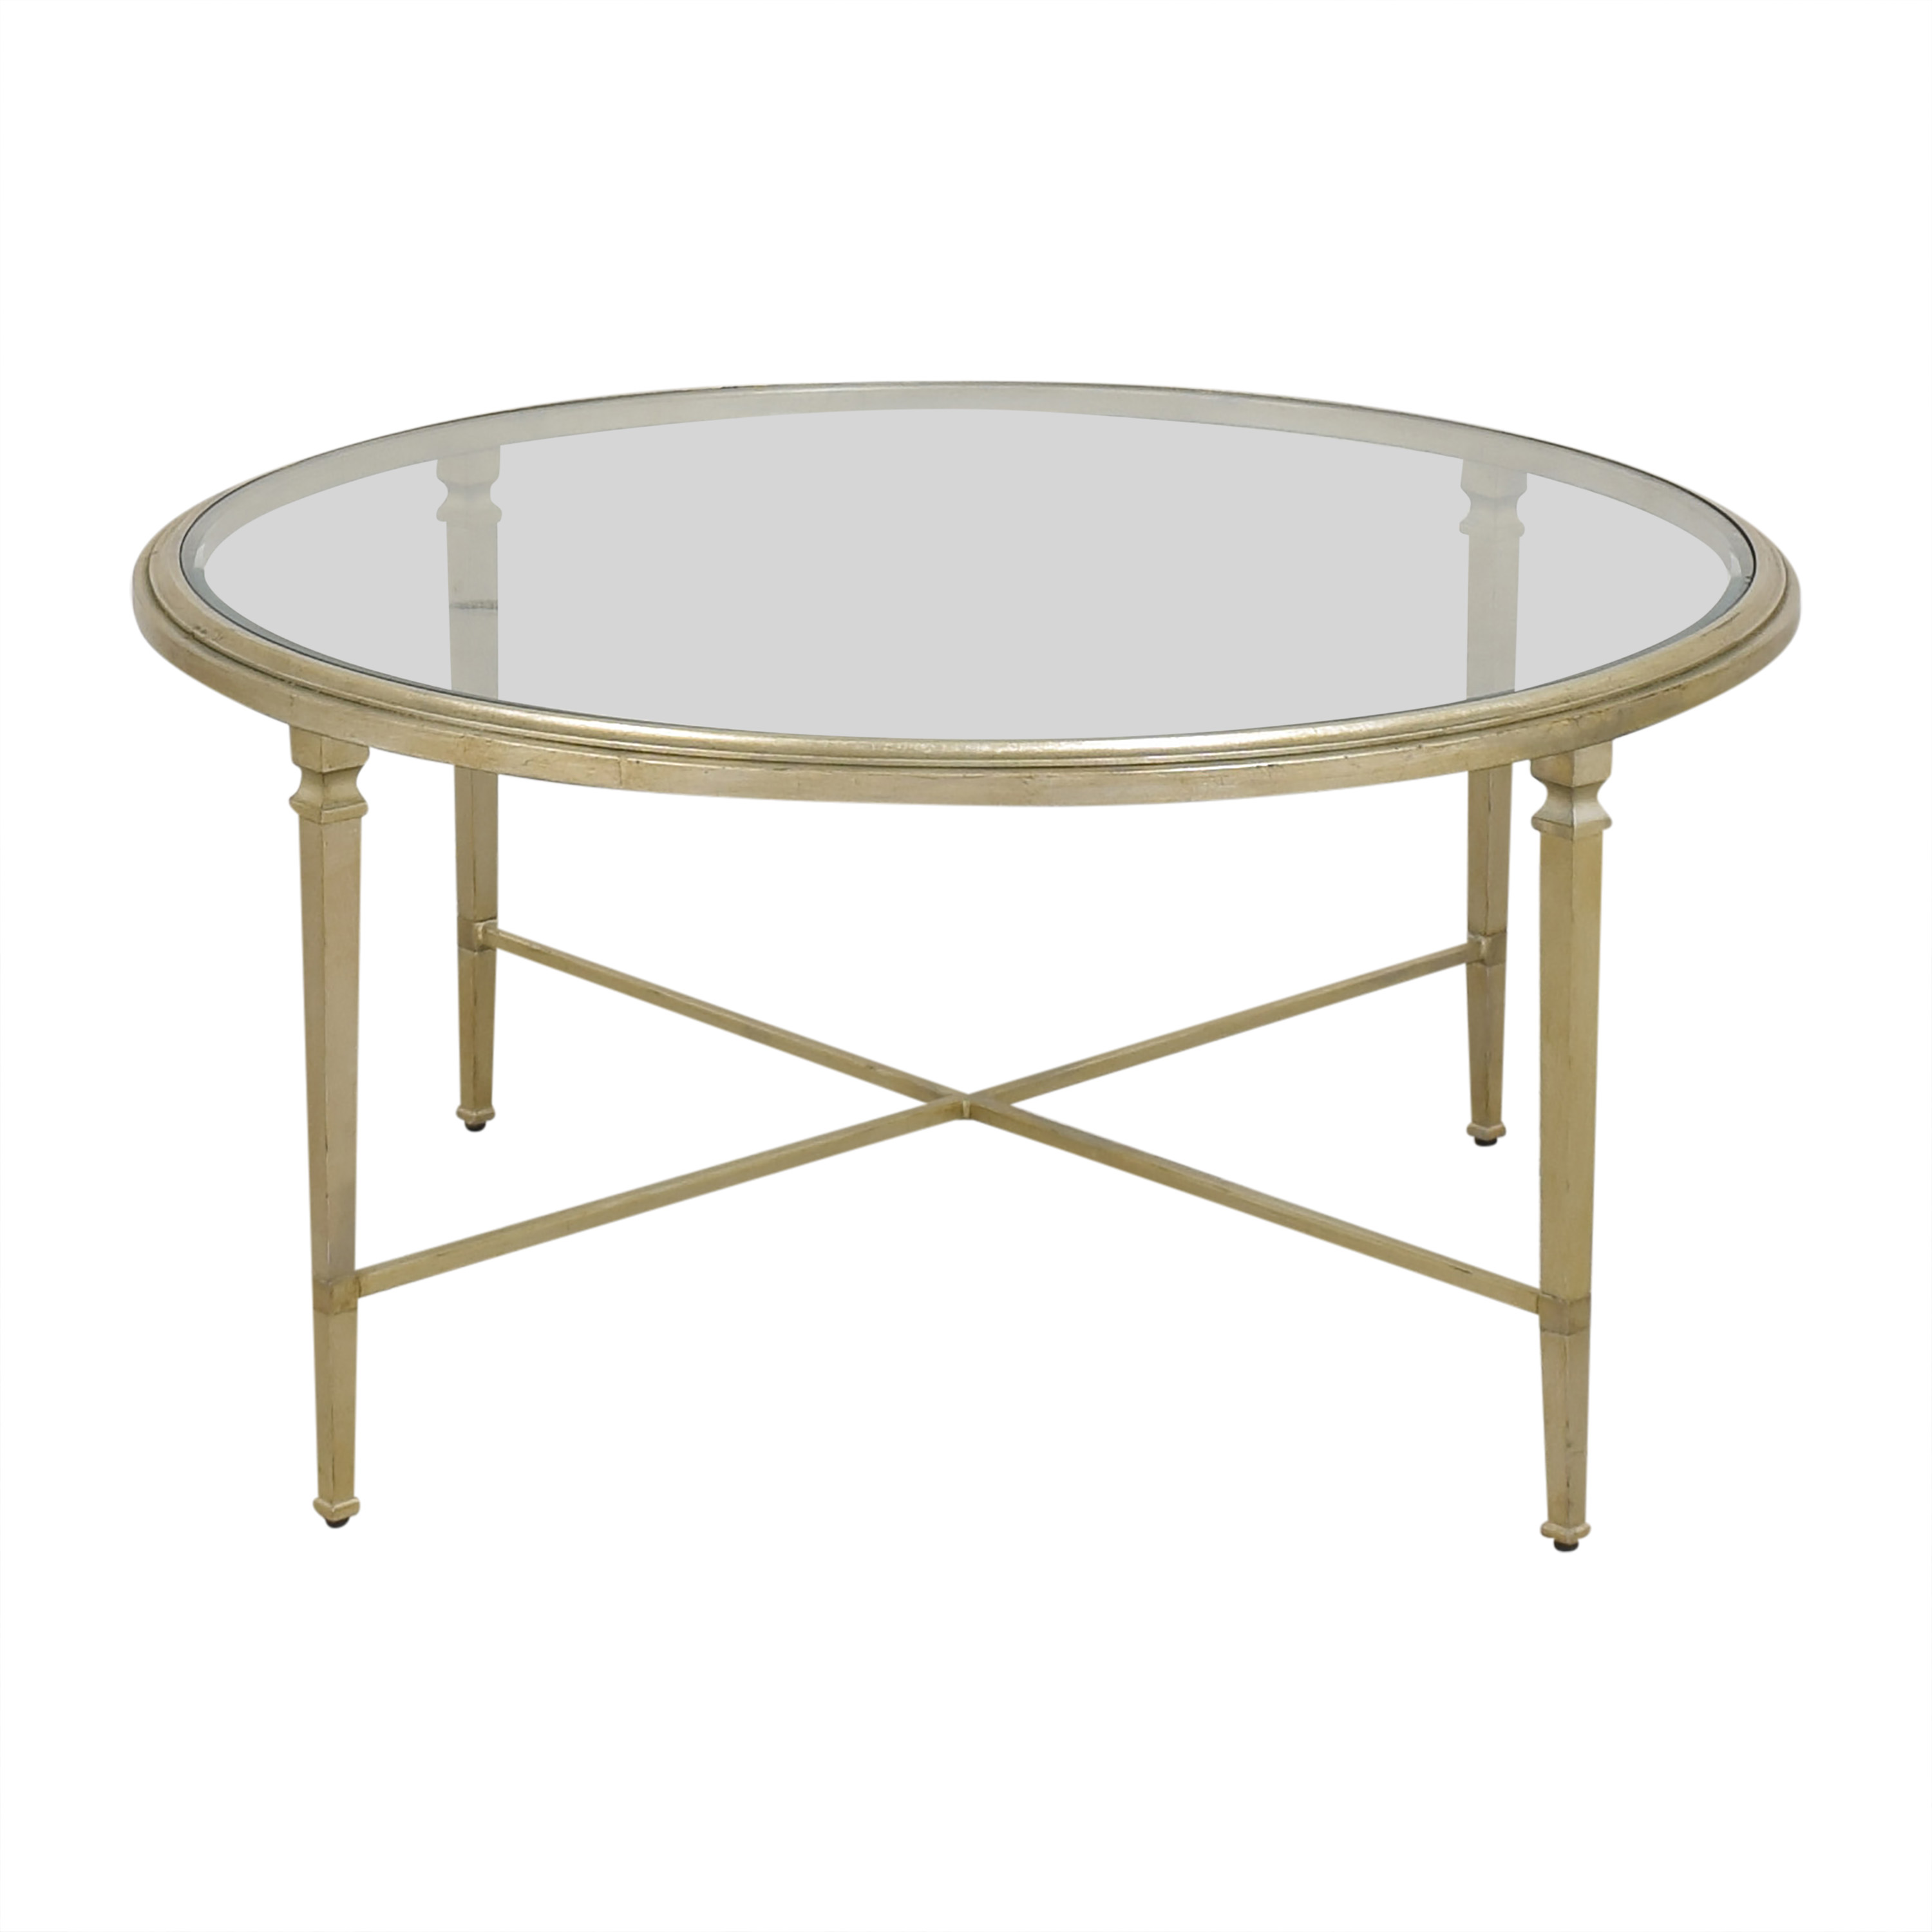 shop Ethan Allen Ethan Allen Heron Round Coffee Table online